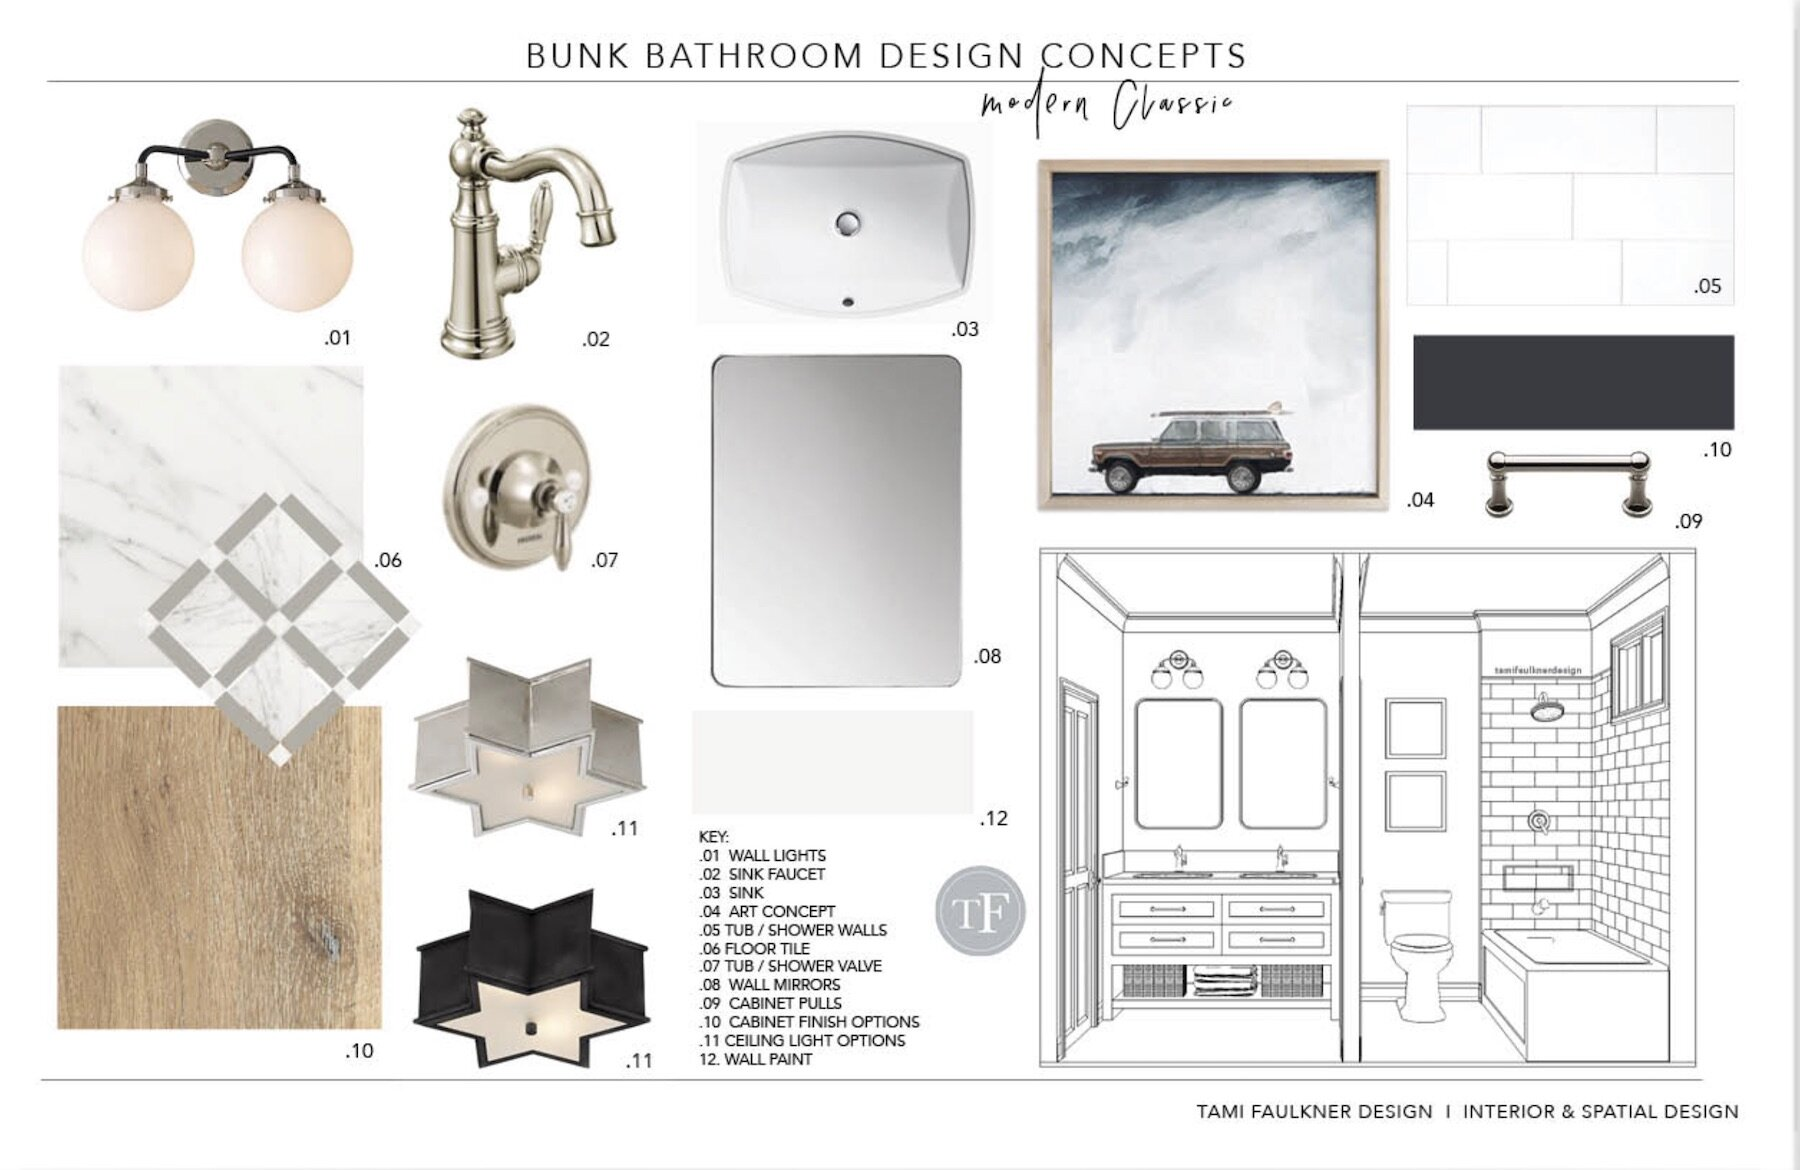 Tips For Designing Small Bathrooms For Multi Users Mount Valley Project Tami Faulkner Design,Ikea Bedroom Makeover